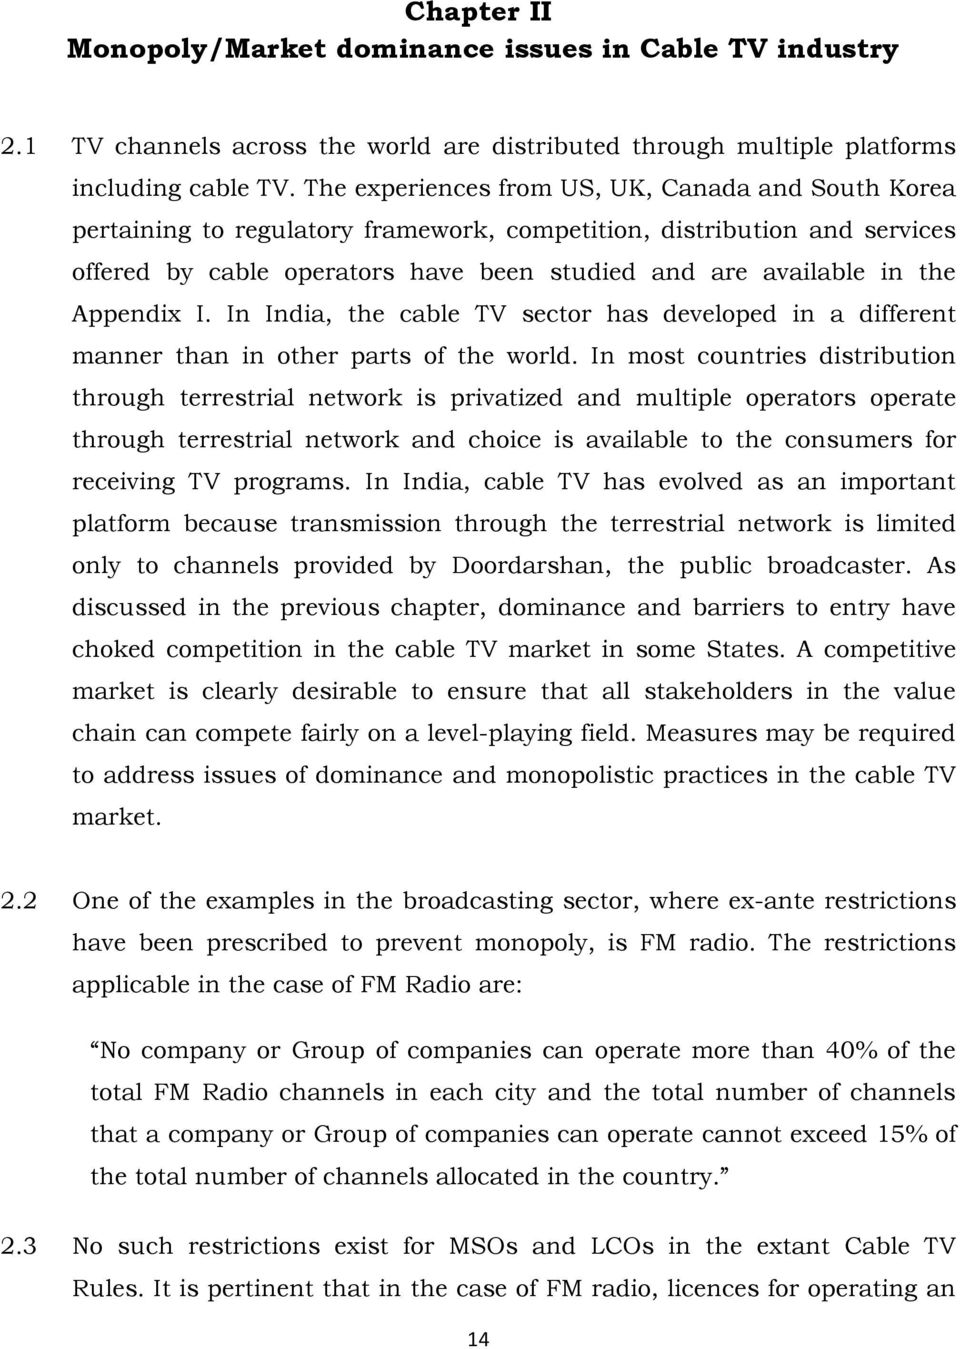 Appendix I. In India, the cable TV sector has developed in a different manner than in other parts of the world.